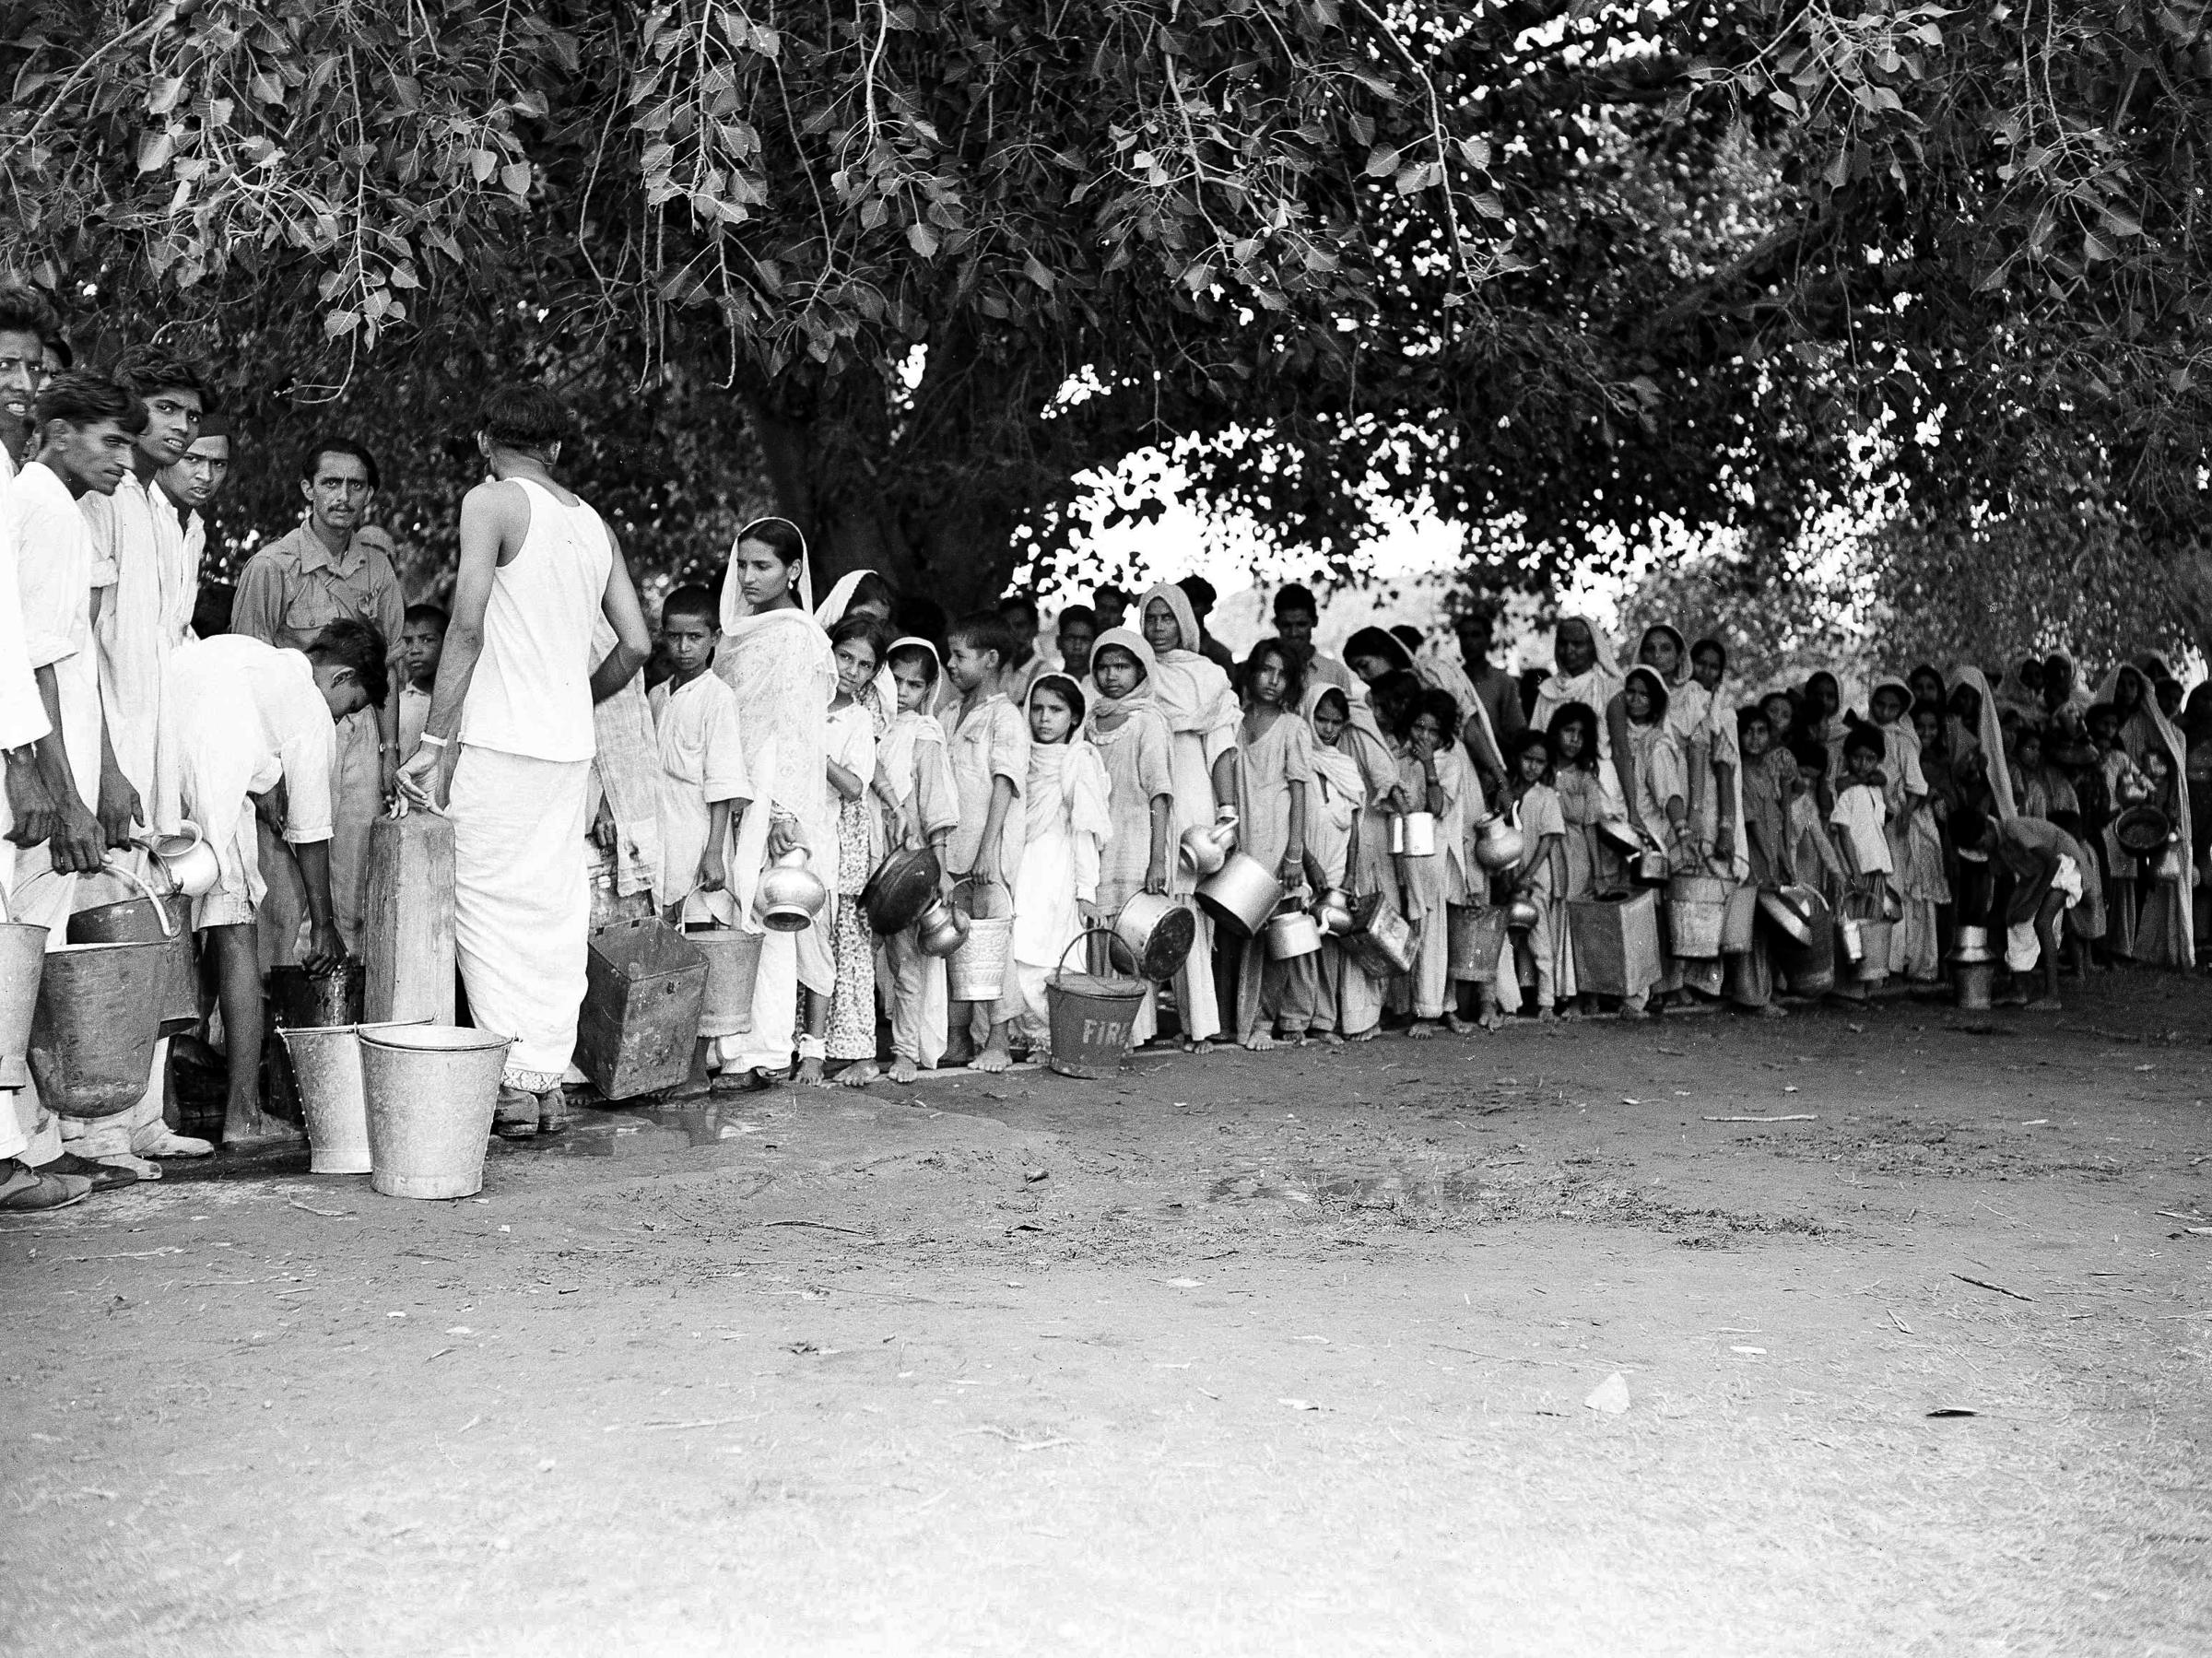 Muslim Refugees Evacuated From Areas Of Unrest In New Delhi Queue Up For Water At Delhis Old Fort September 1947